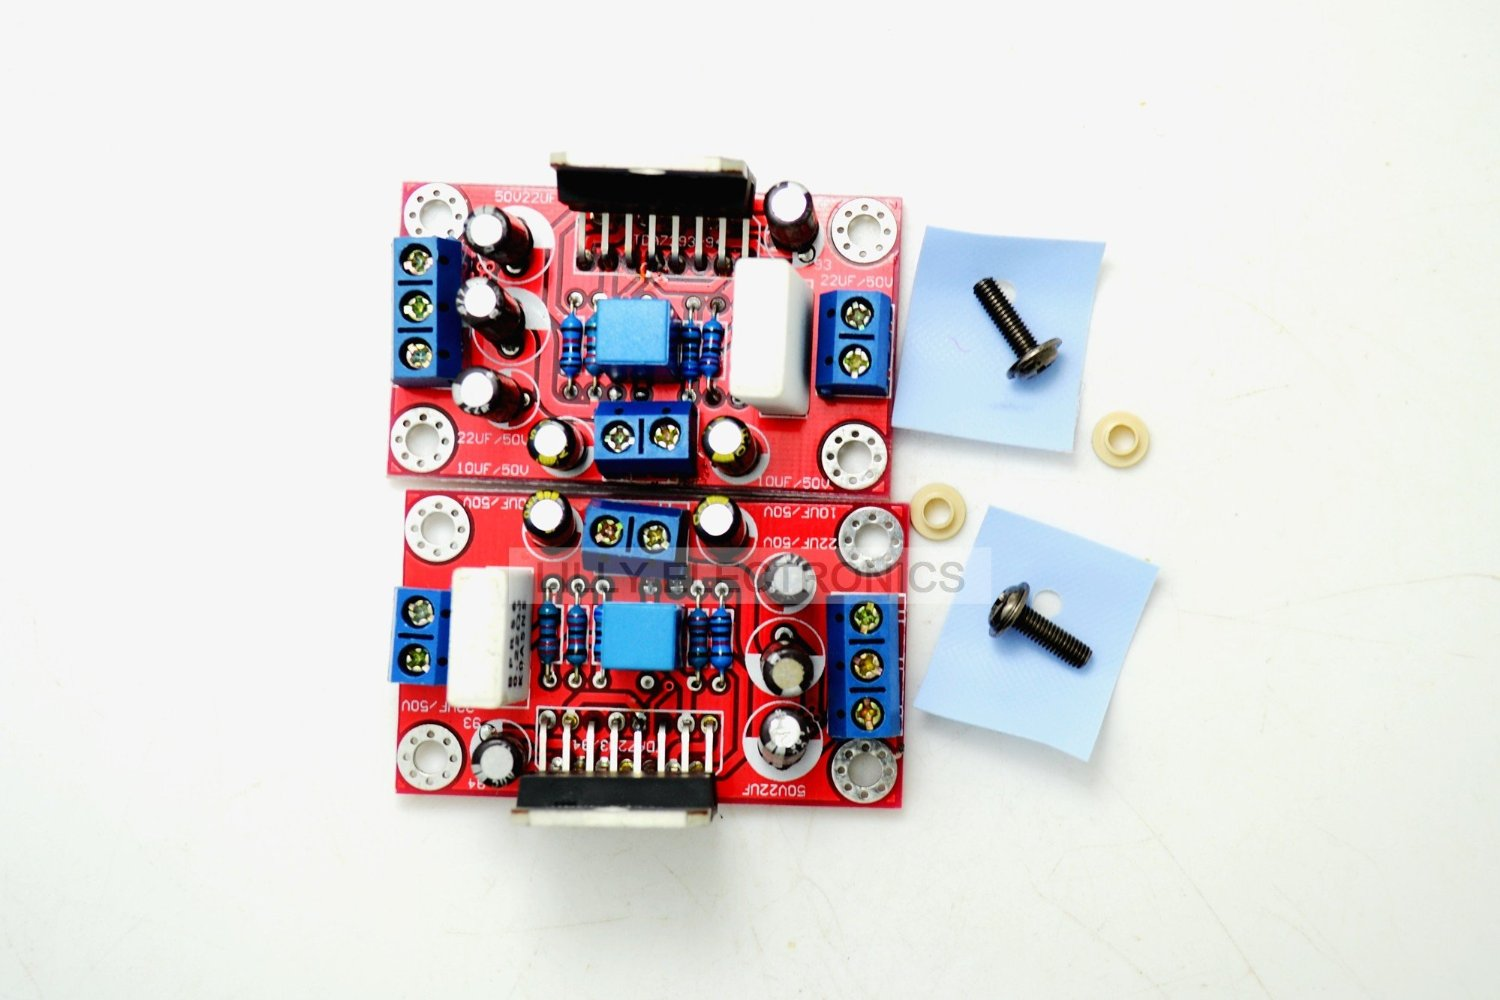 Buy Need Bile Taste High Quality Amplifier Tda7294 Fever Dual 200w Simple Audio Circuit Using Mono Two Channels 85w Stereo Power Board Amp